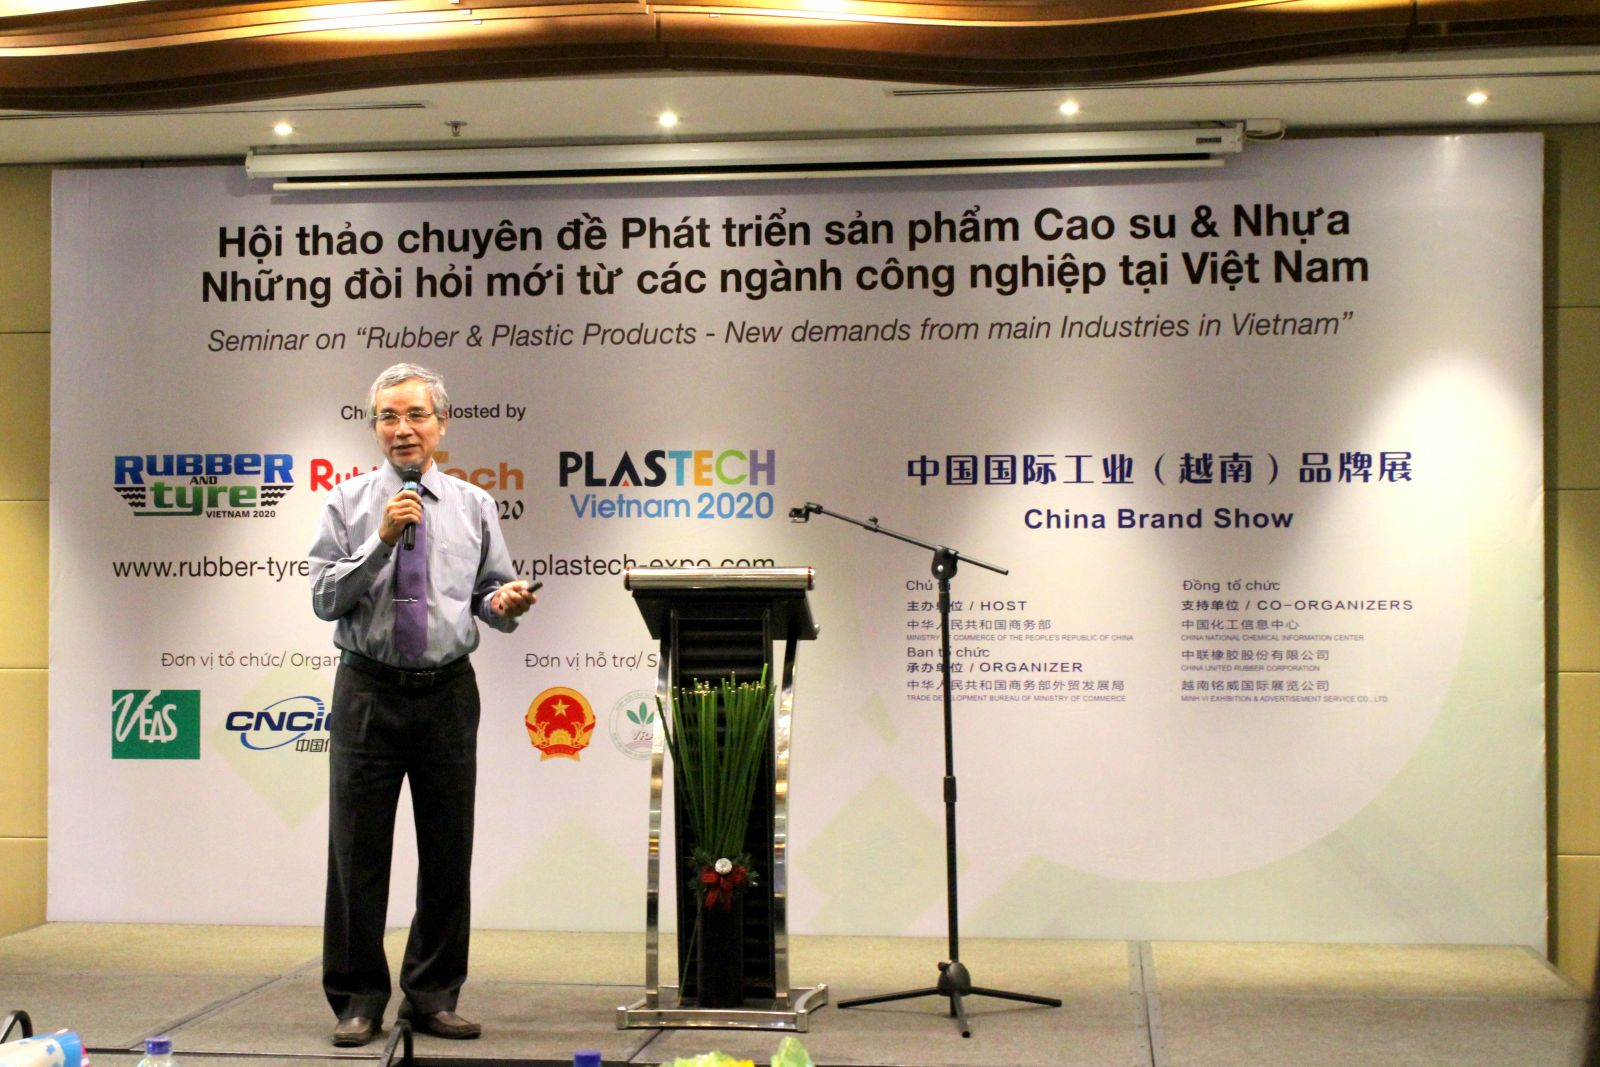 Mr. Nguyen Quoc Anh was sharing about opportunities and challenges of  Vietnam rubber & plastic industry